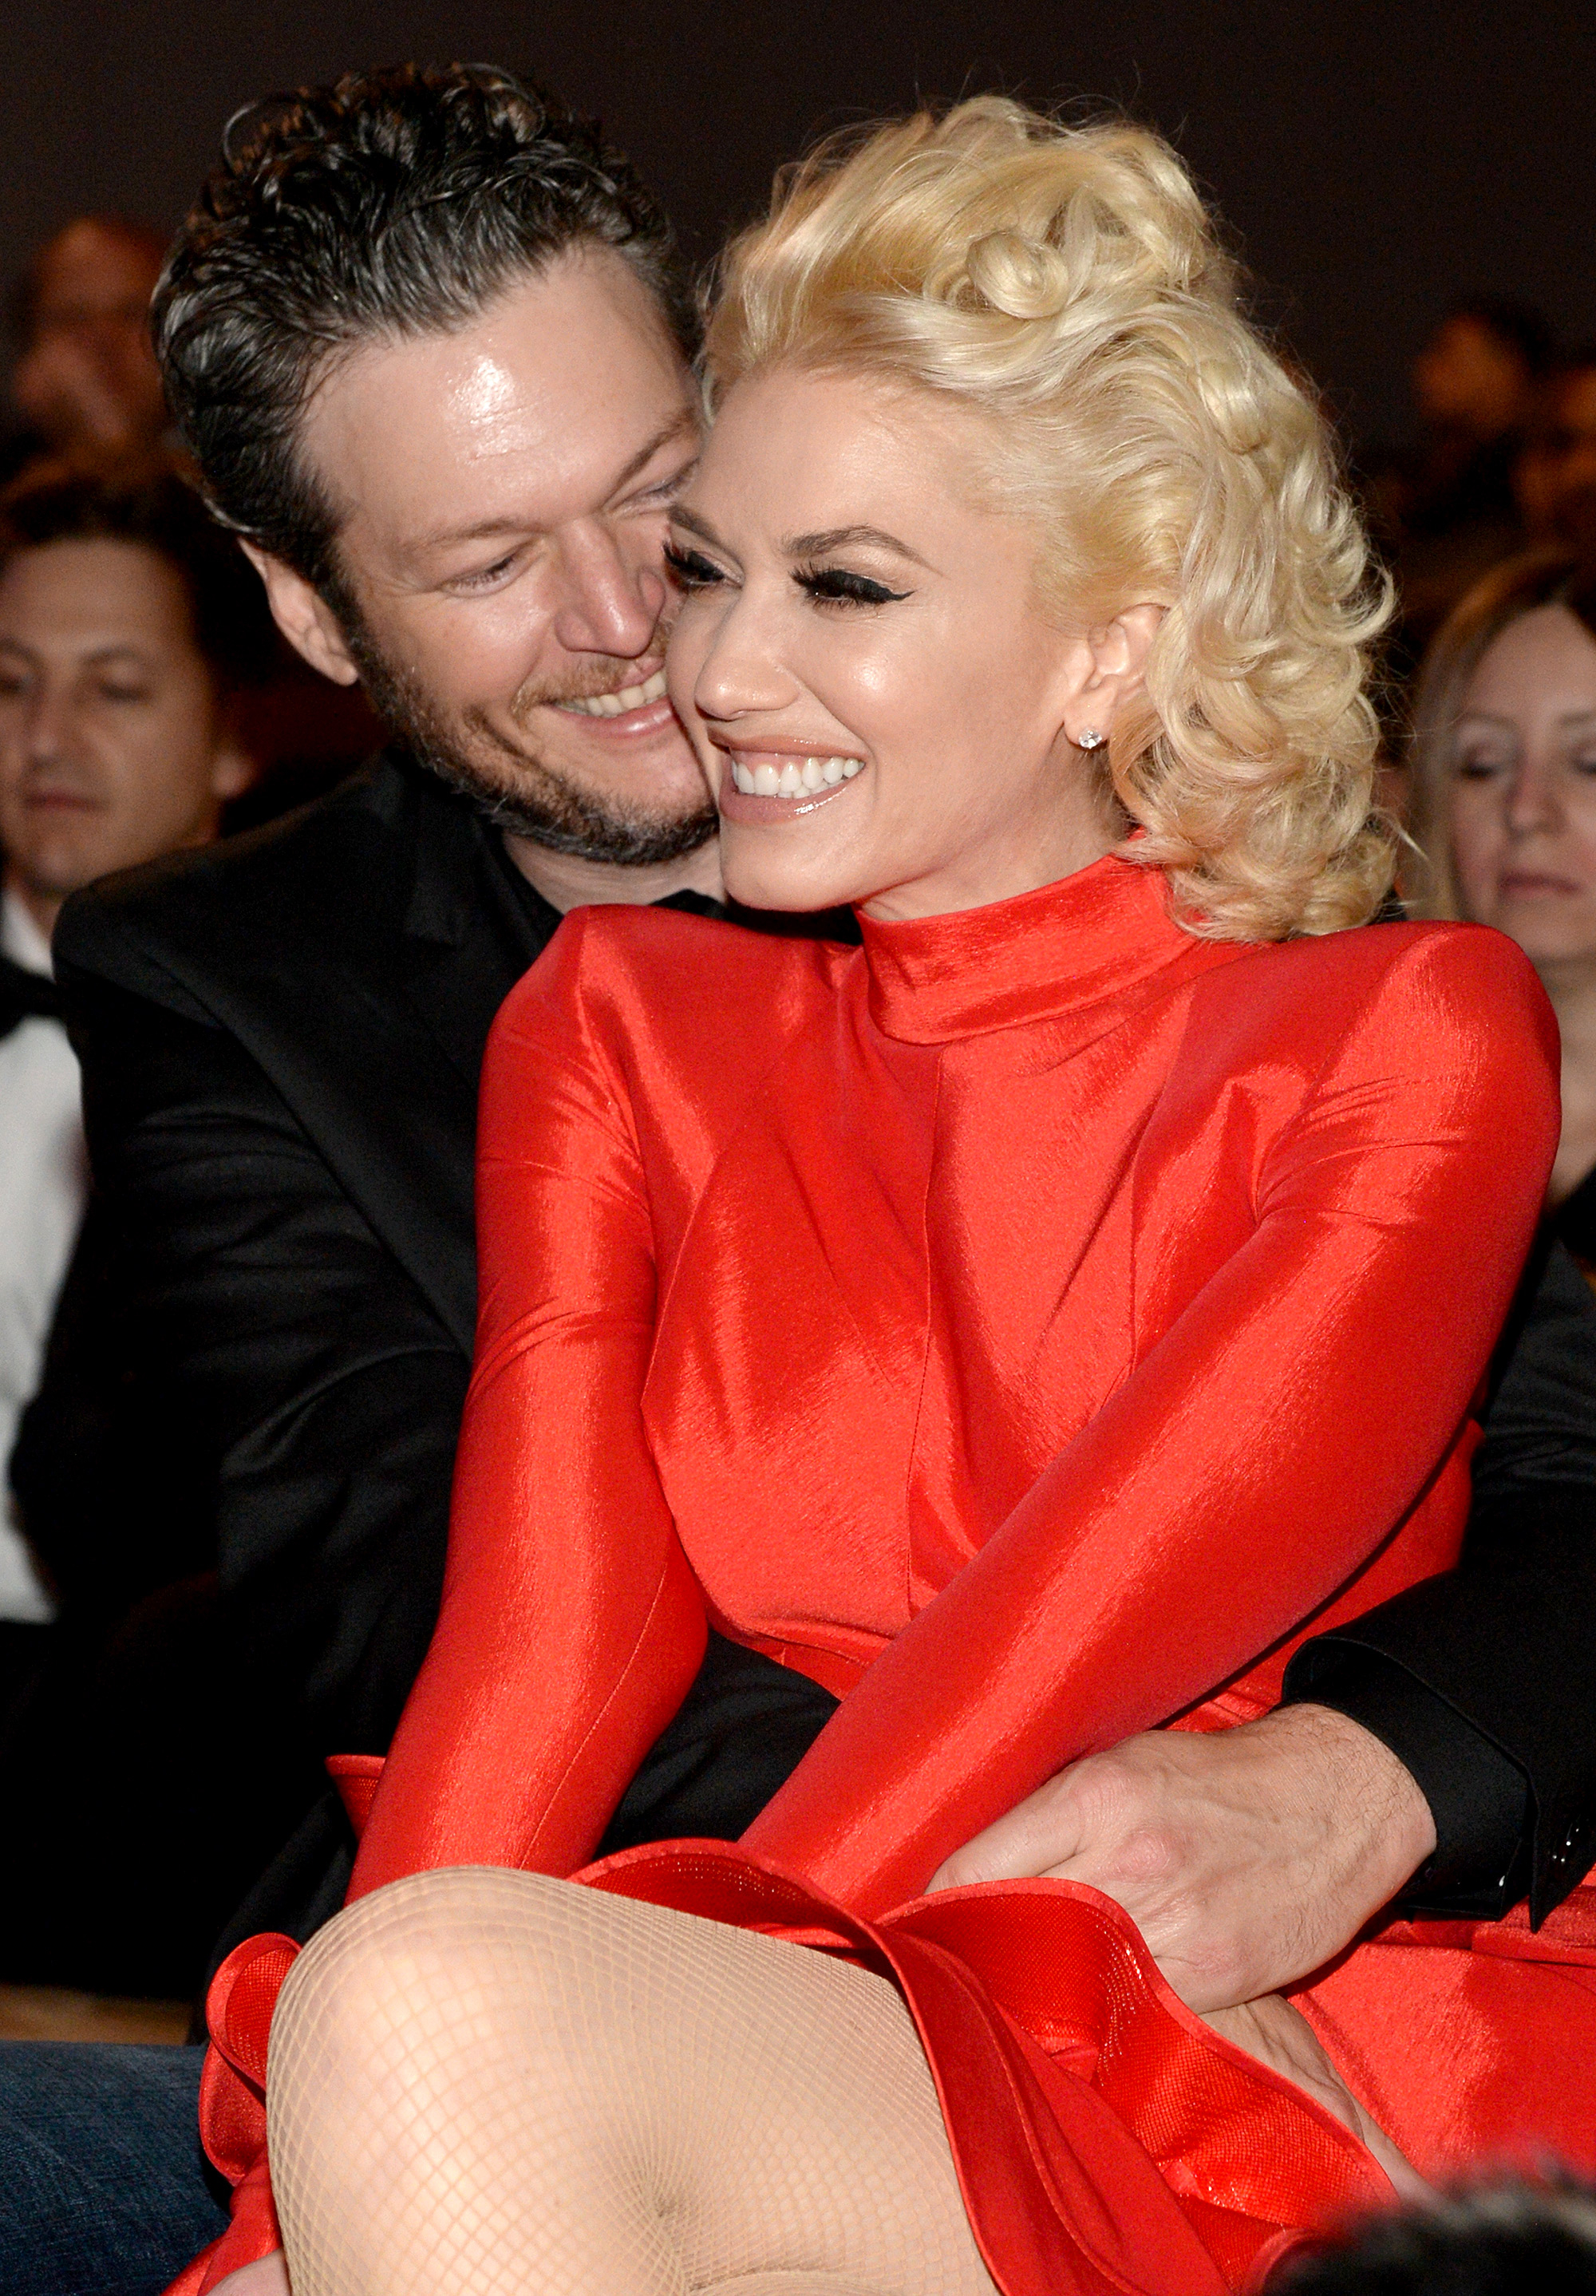 Blake Shelton Gwen Stefani - Love was definitely in the air. Stefani and Shelton made their red carpet debut at the Vanity Fair 2016 Oscars afterparty , where the No Doubt singer performed.